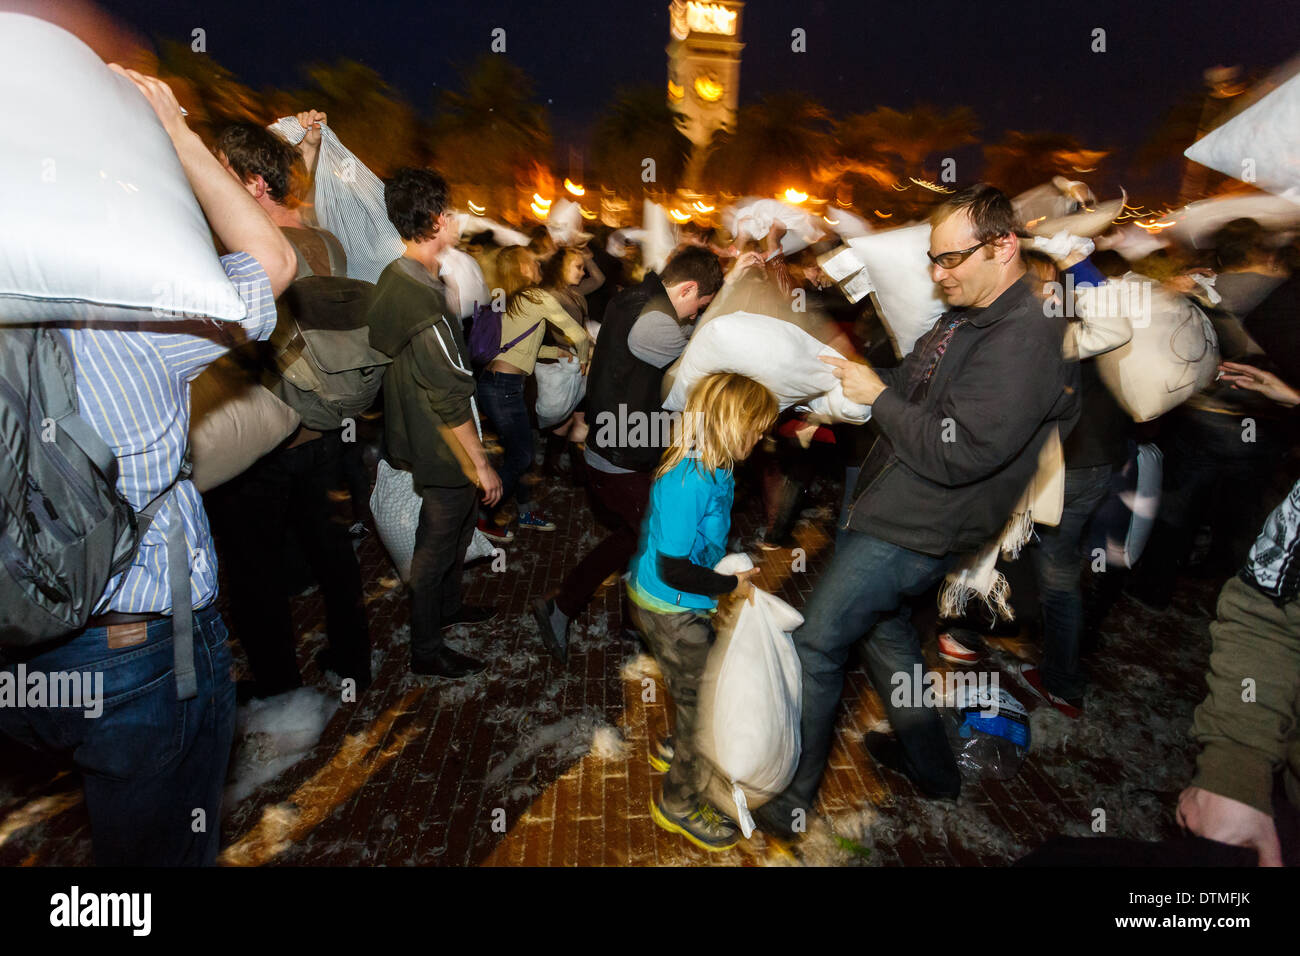 Evasive moves during Valentines Day pillow fight fun in San Francisco - Stock Image